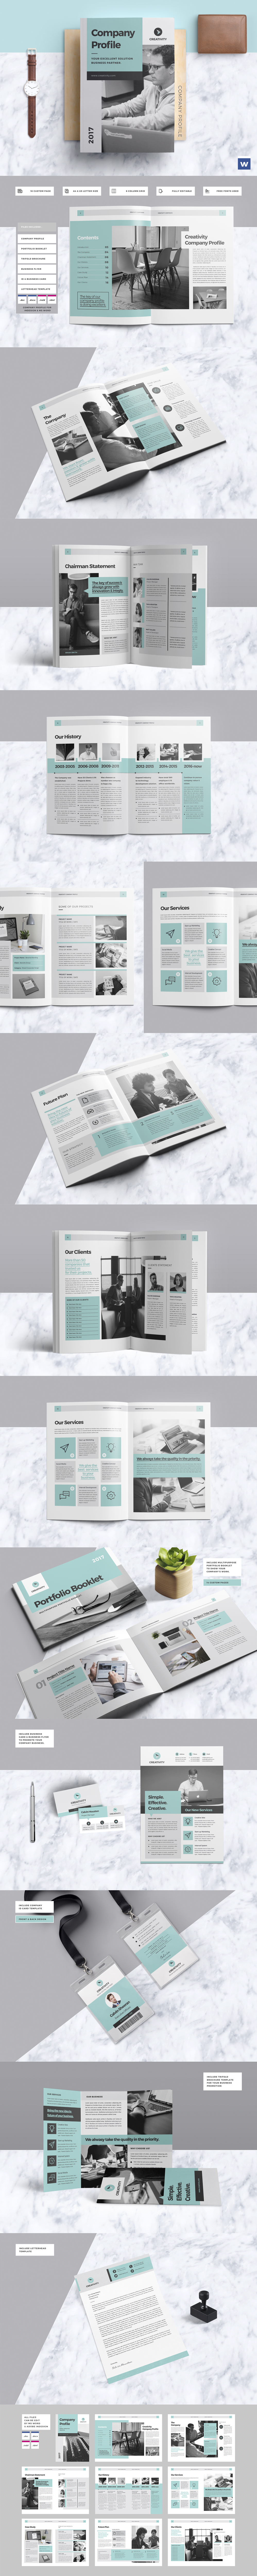 Professional Business Profile Template Clean & Professional Company Profile With Include Portfolio Booklet .